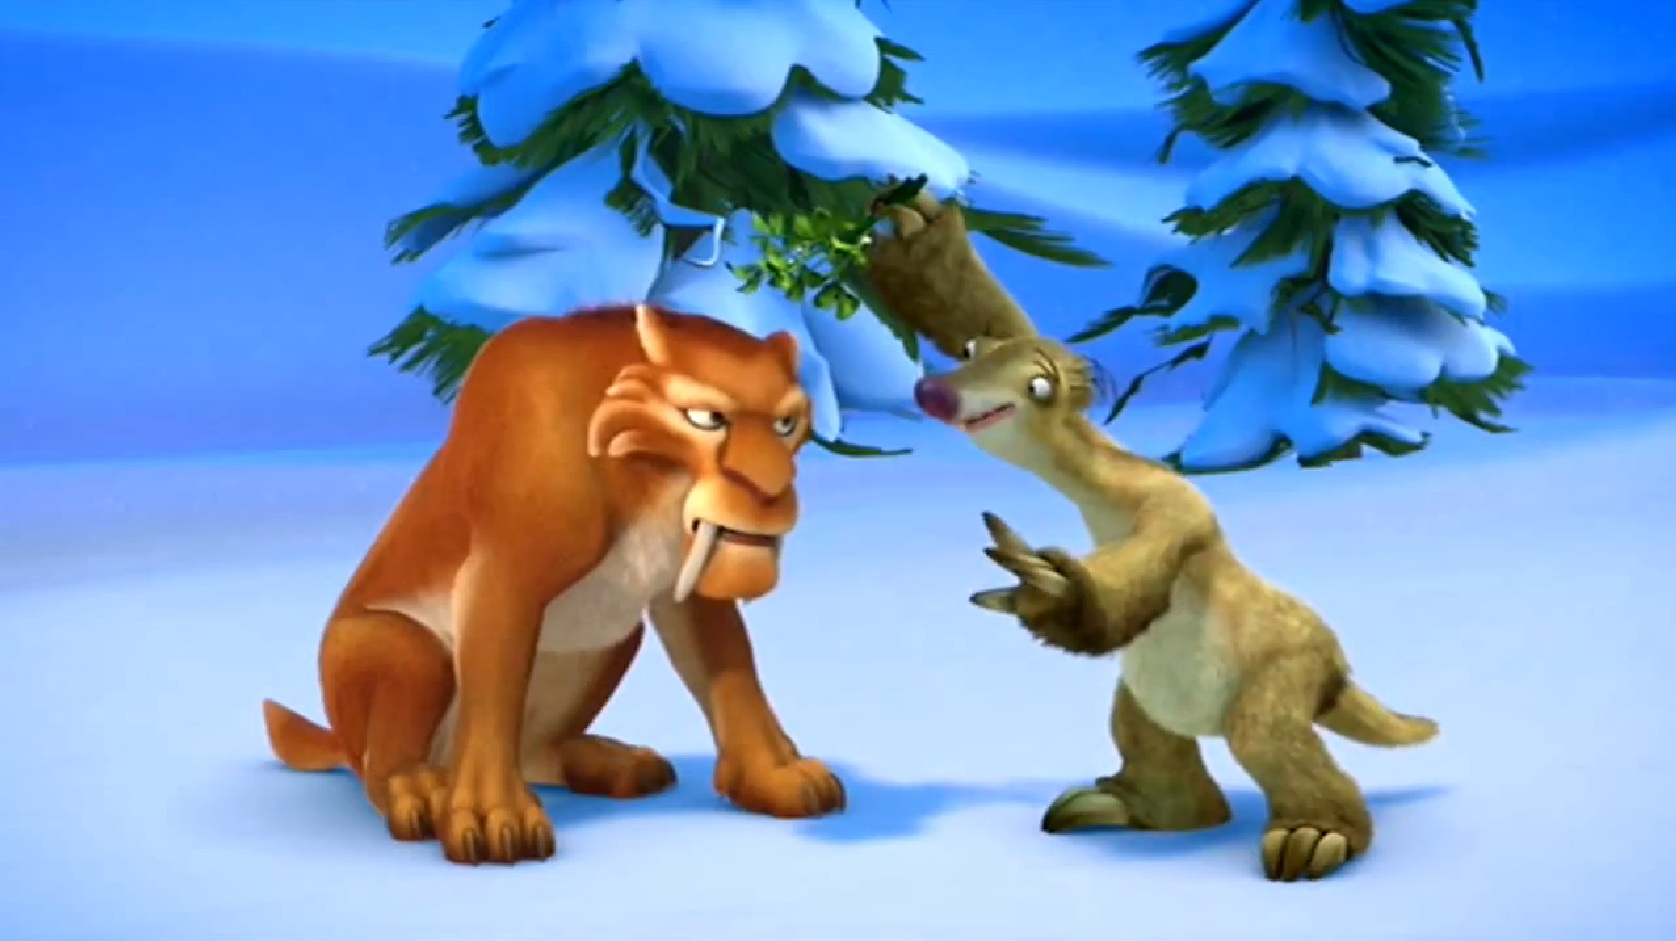 ice age a mammoth christmas sid holds mistletoe over diegojpg - Ice Age Mammoth Christmas